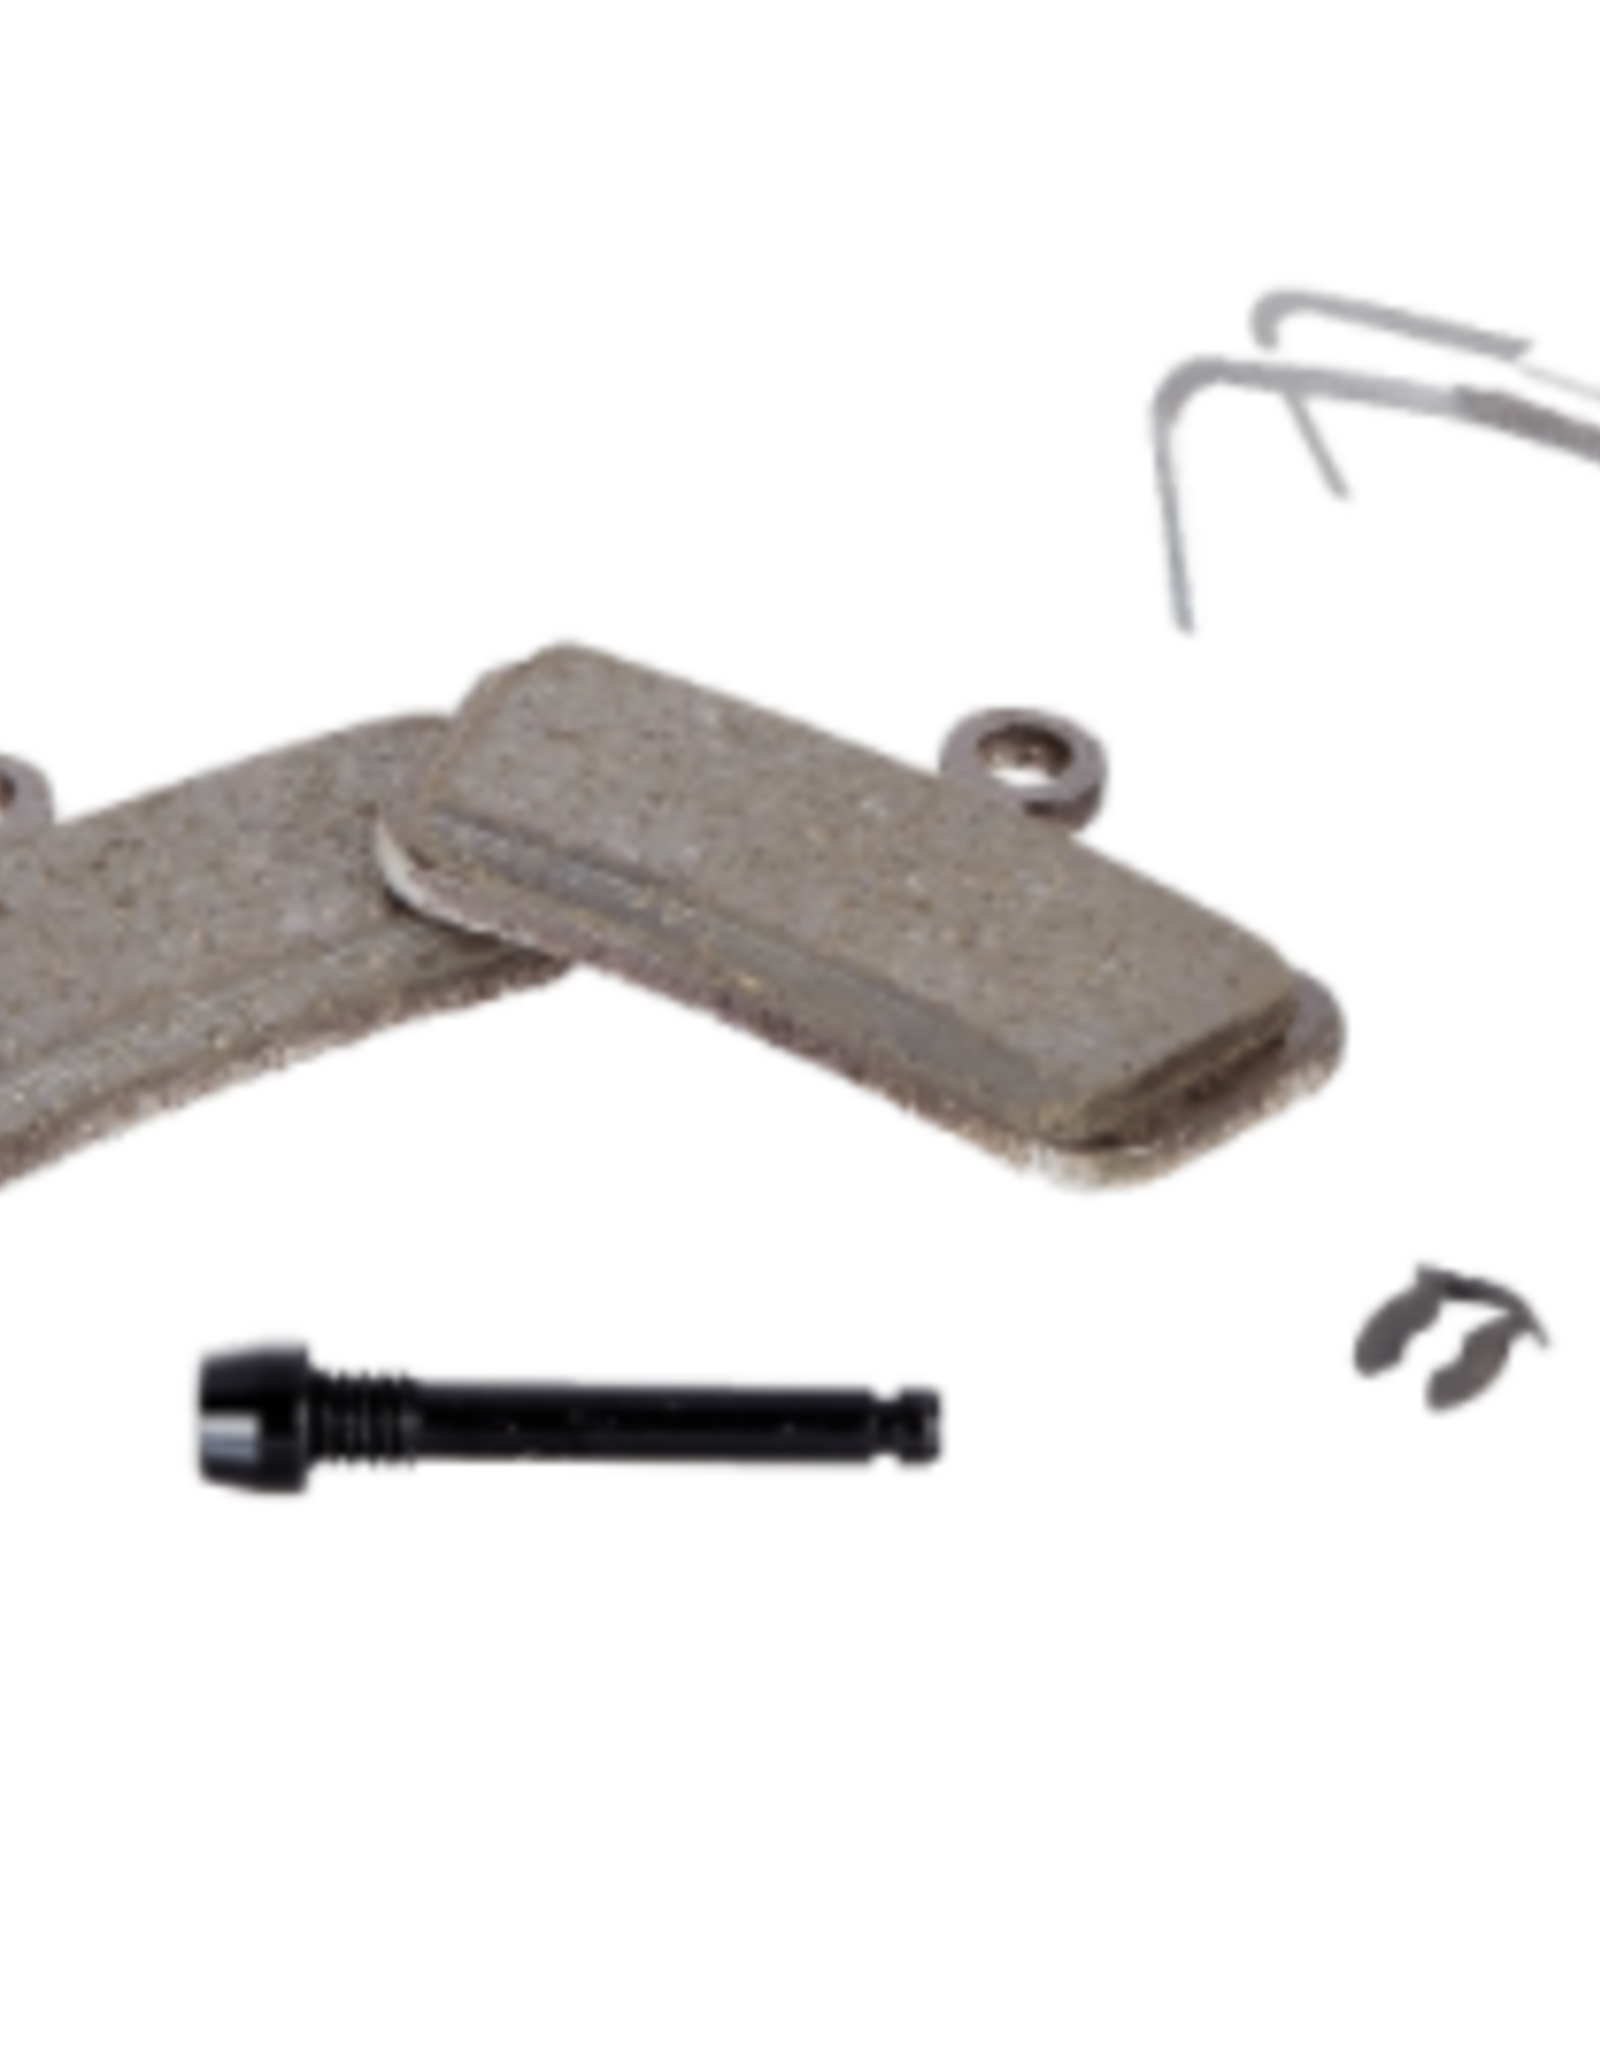 srAM SRAM Disc Brake Pads - Organic Compound, Steel Backed, Powerful, For Trail, Guide, and G2